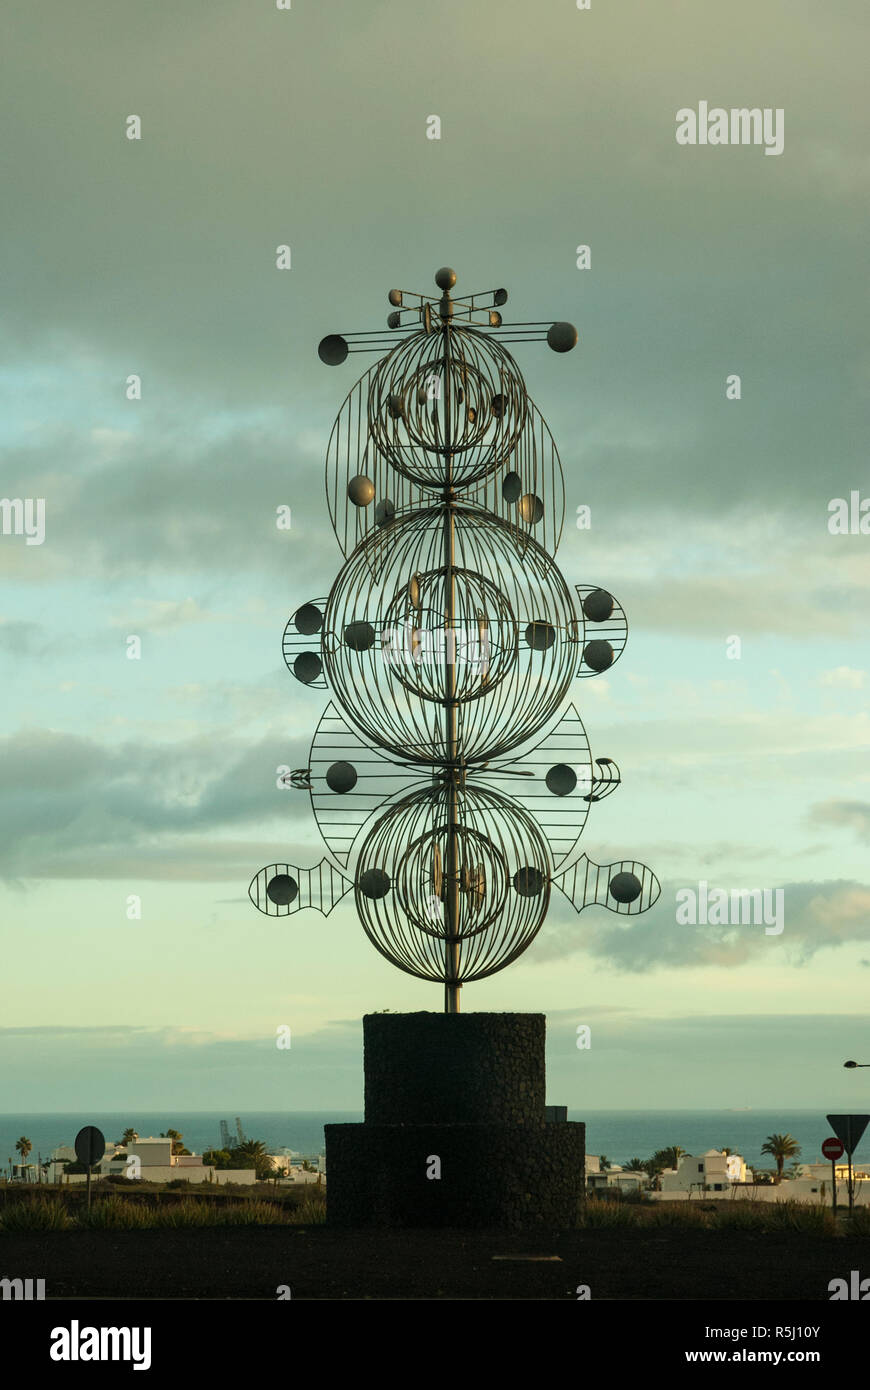 A striking kinetic sculpture at twilight by artist Cesar Manrique in his home land.  Tahiche, Lanzarote, Canary islands - Stock Image